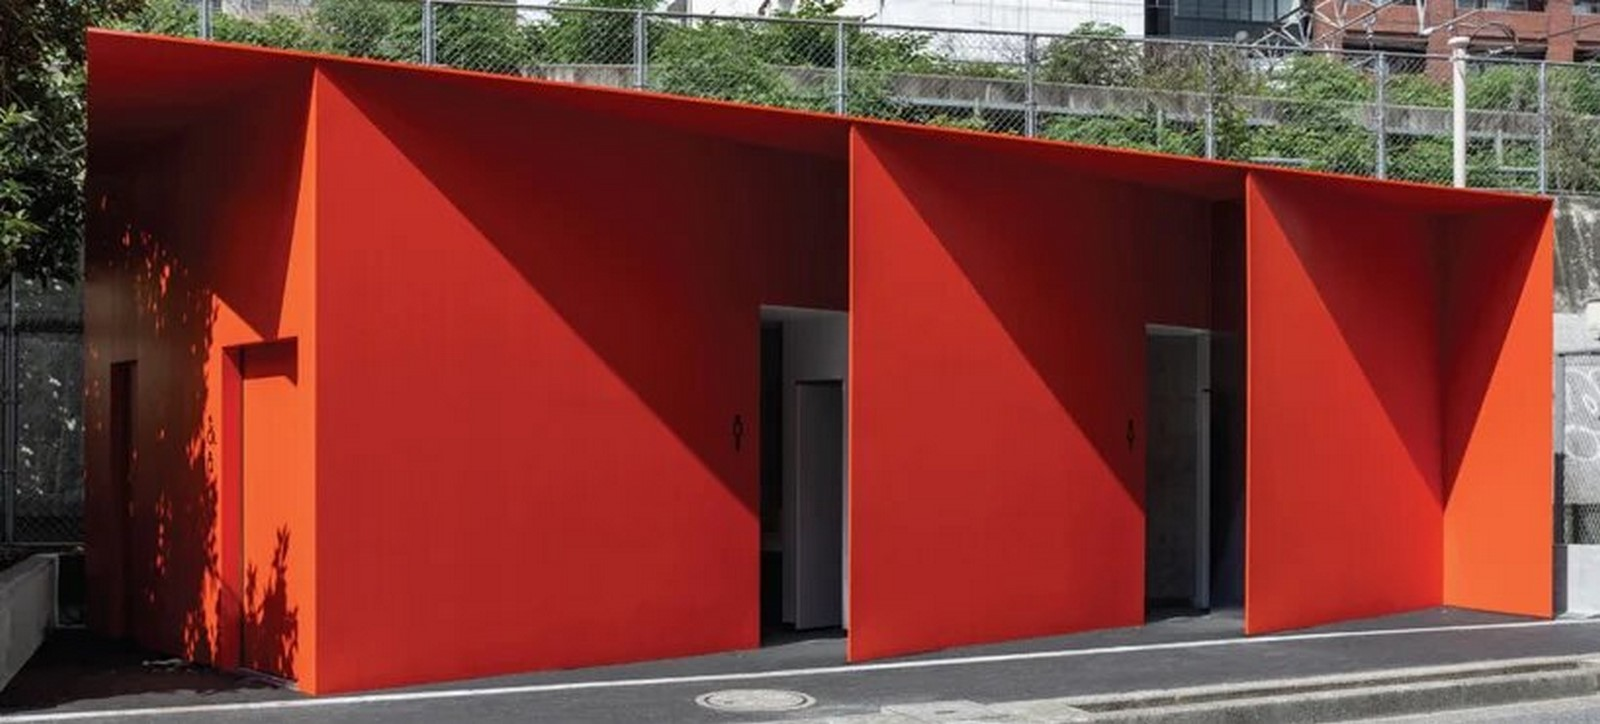 Nao Tamura Designs All red restroom for the Tokyo Toilet Initiative8